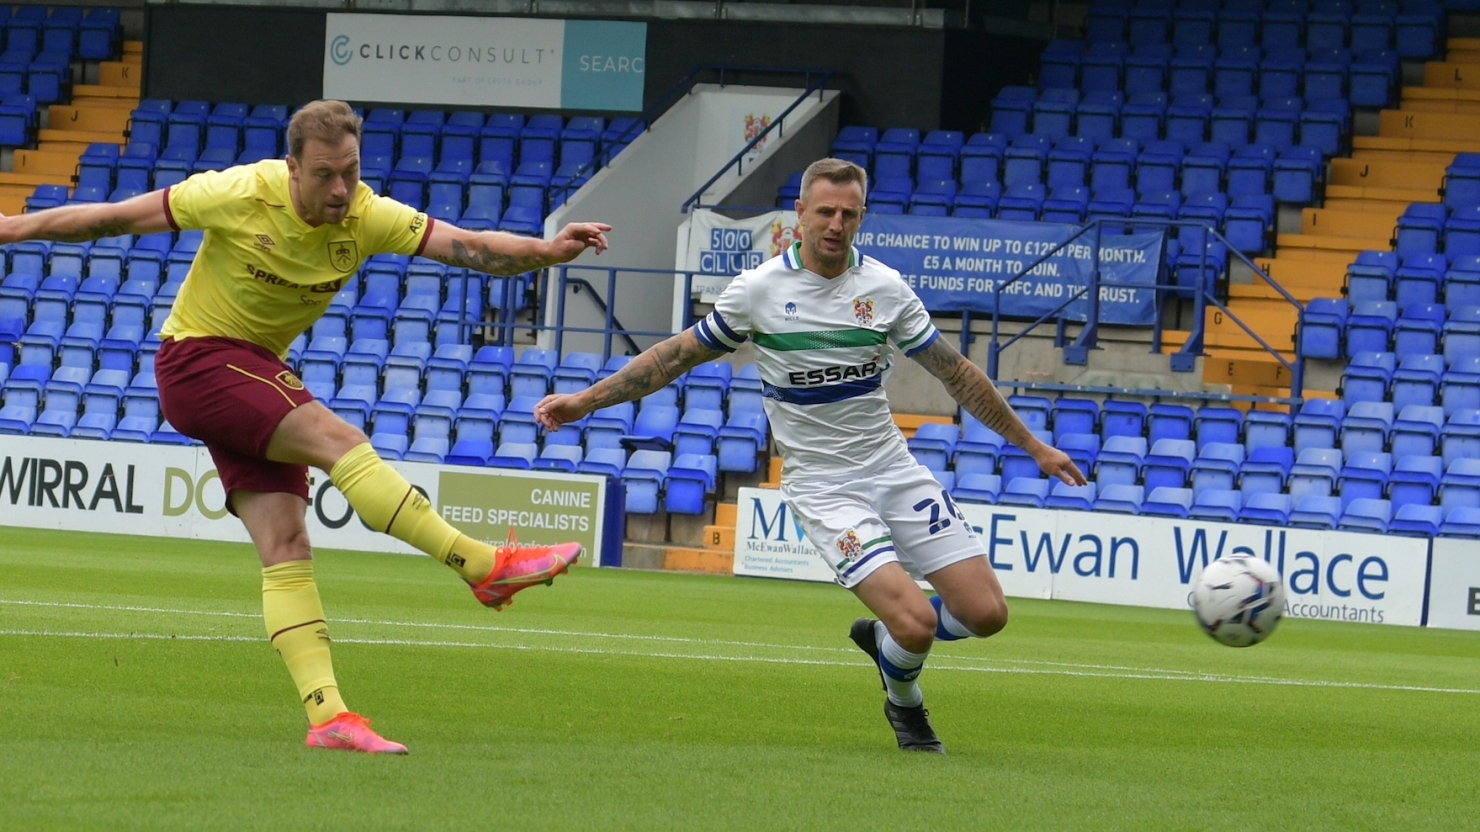 BARNES GLAD TO BE BACK IN THE GROOVE